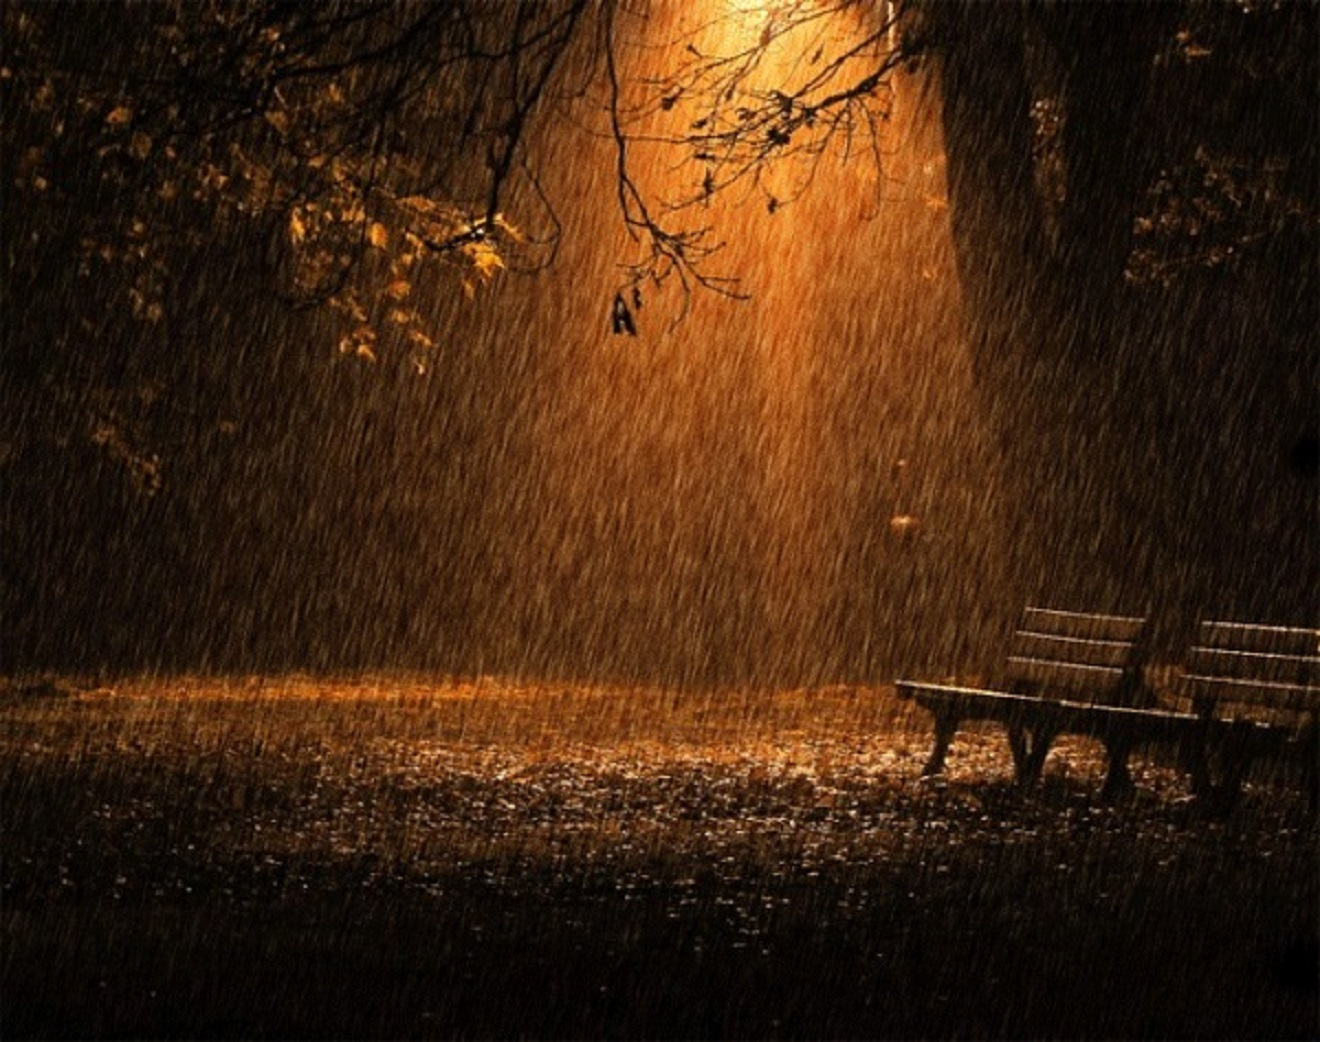 sad rainy night - HD 1320×1042